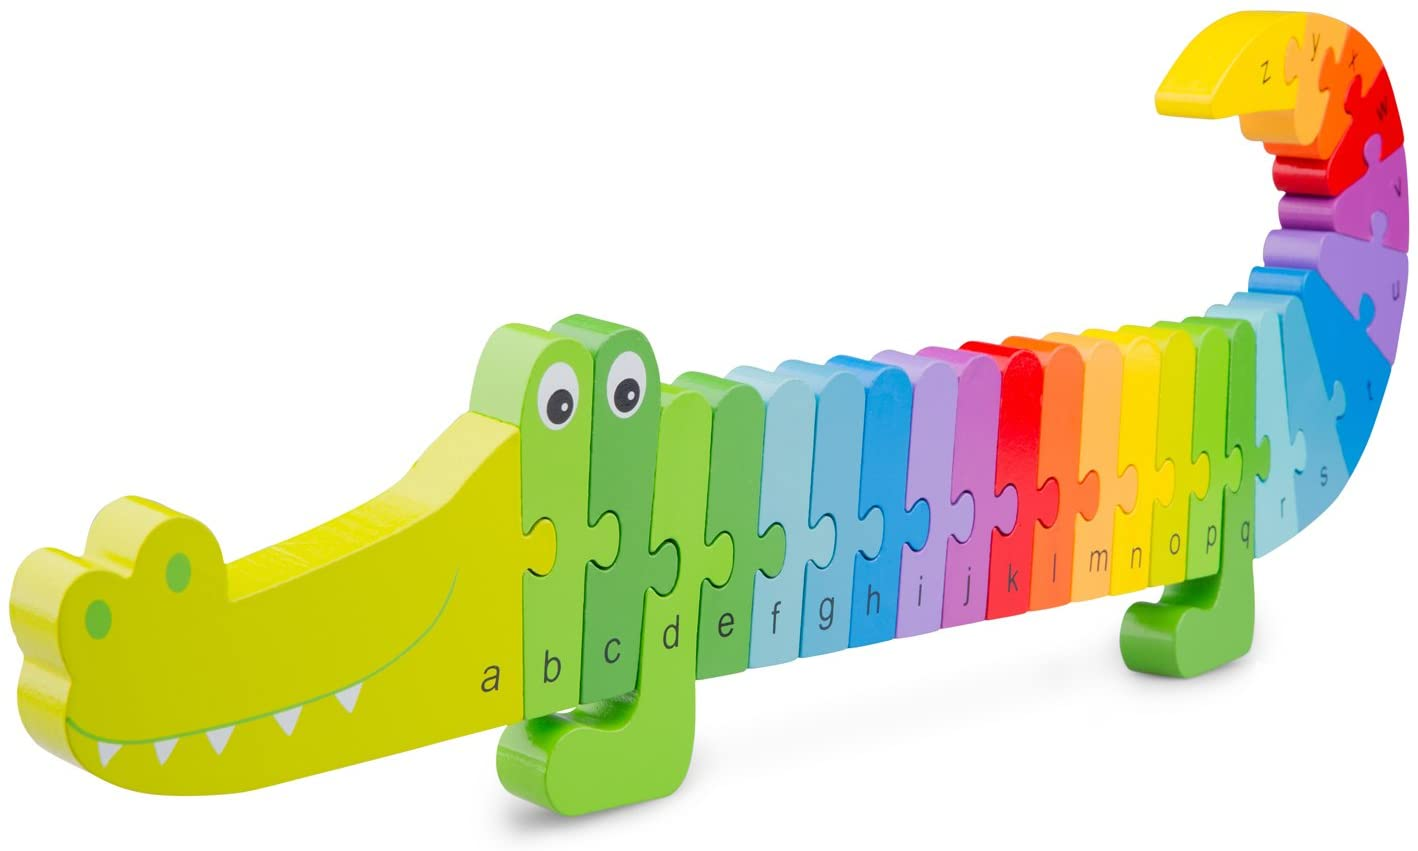 New Classic Toys Alphabet Puzzle Crocodile Educational Wooden Toys for 3 Year Old Boy and Girl Toddlers Learn The Alphabet